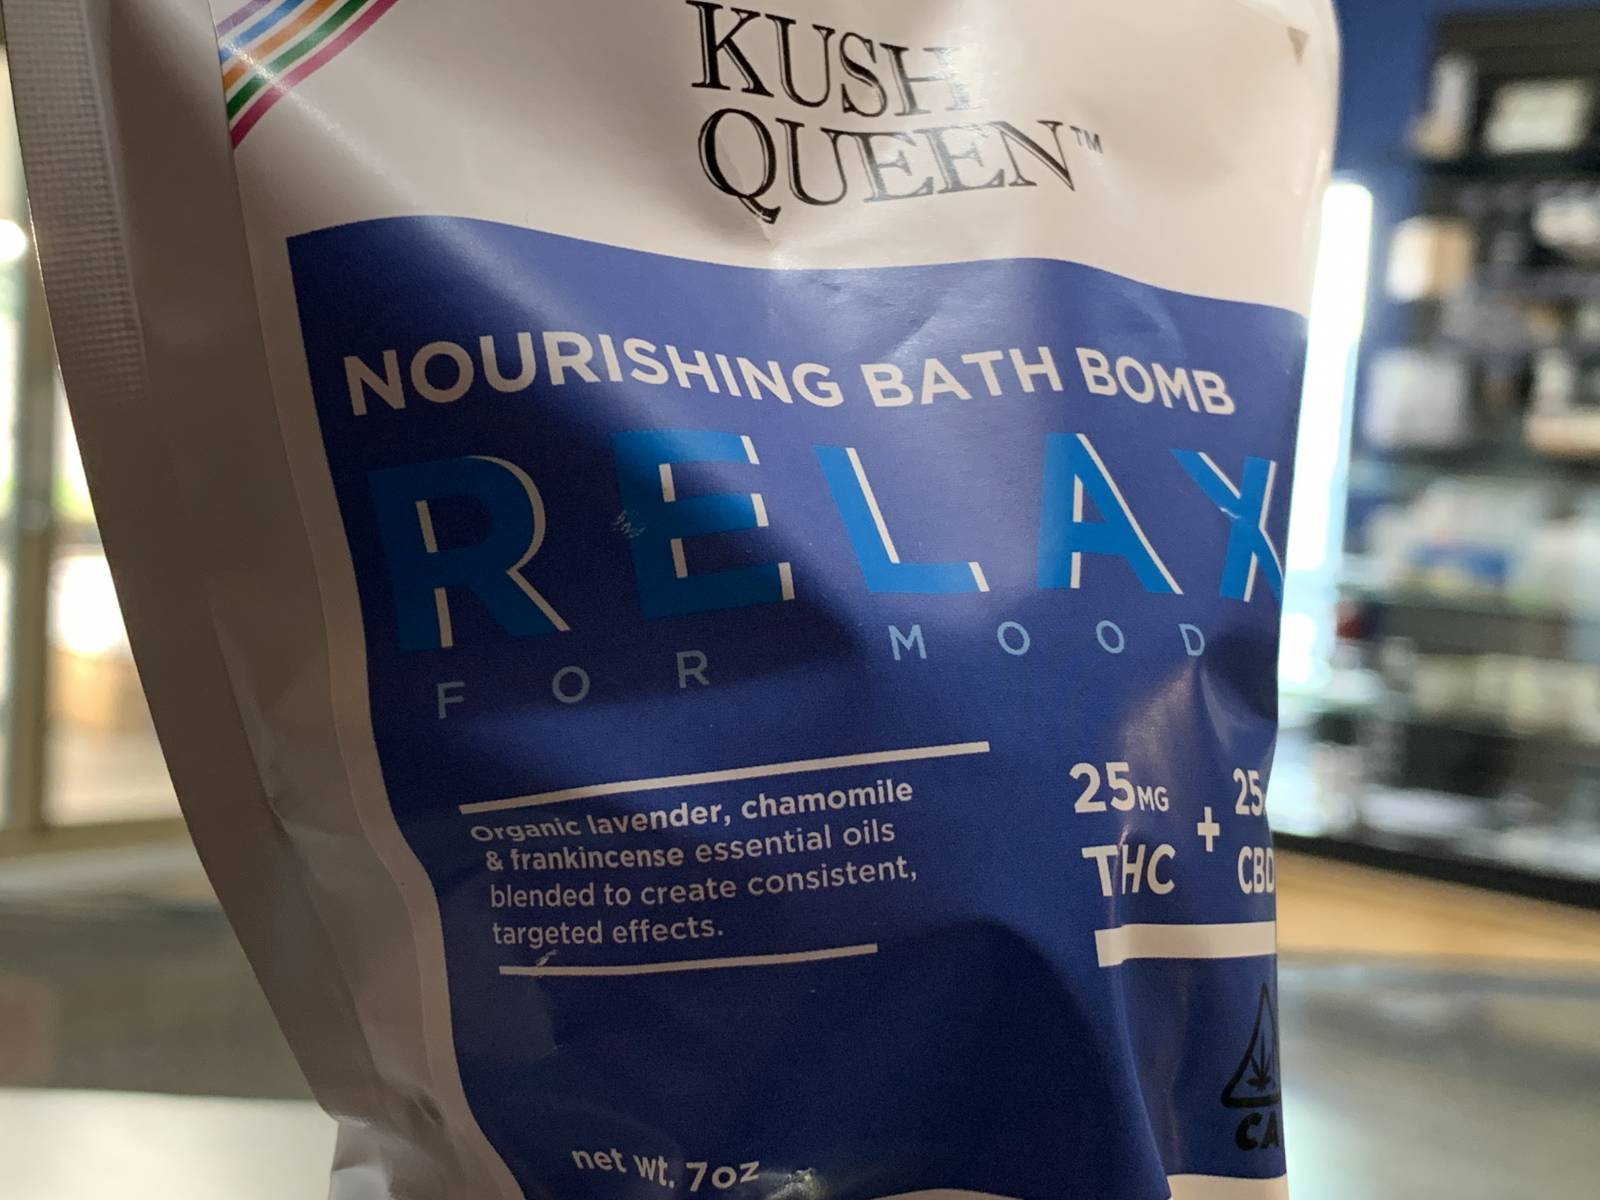 Kush Queen 1:1 Relax bath bomb